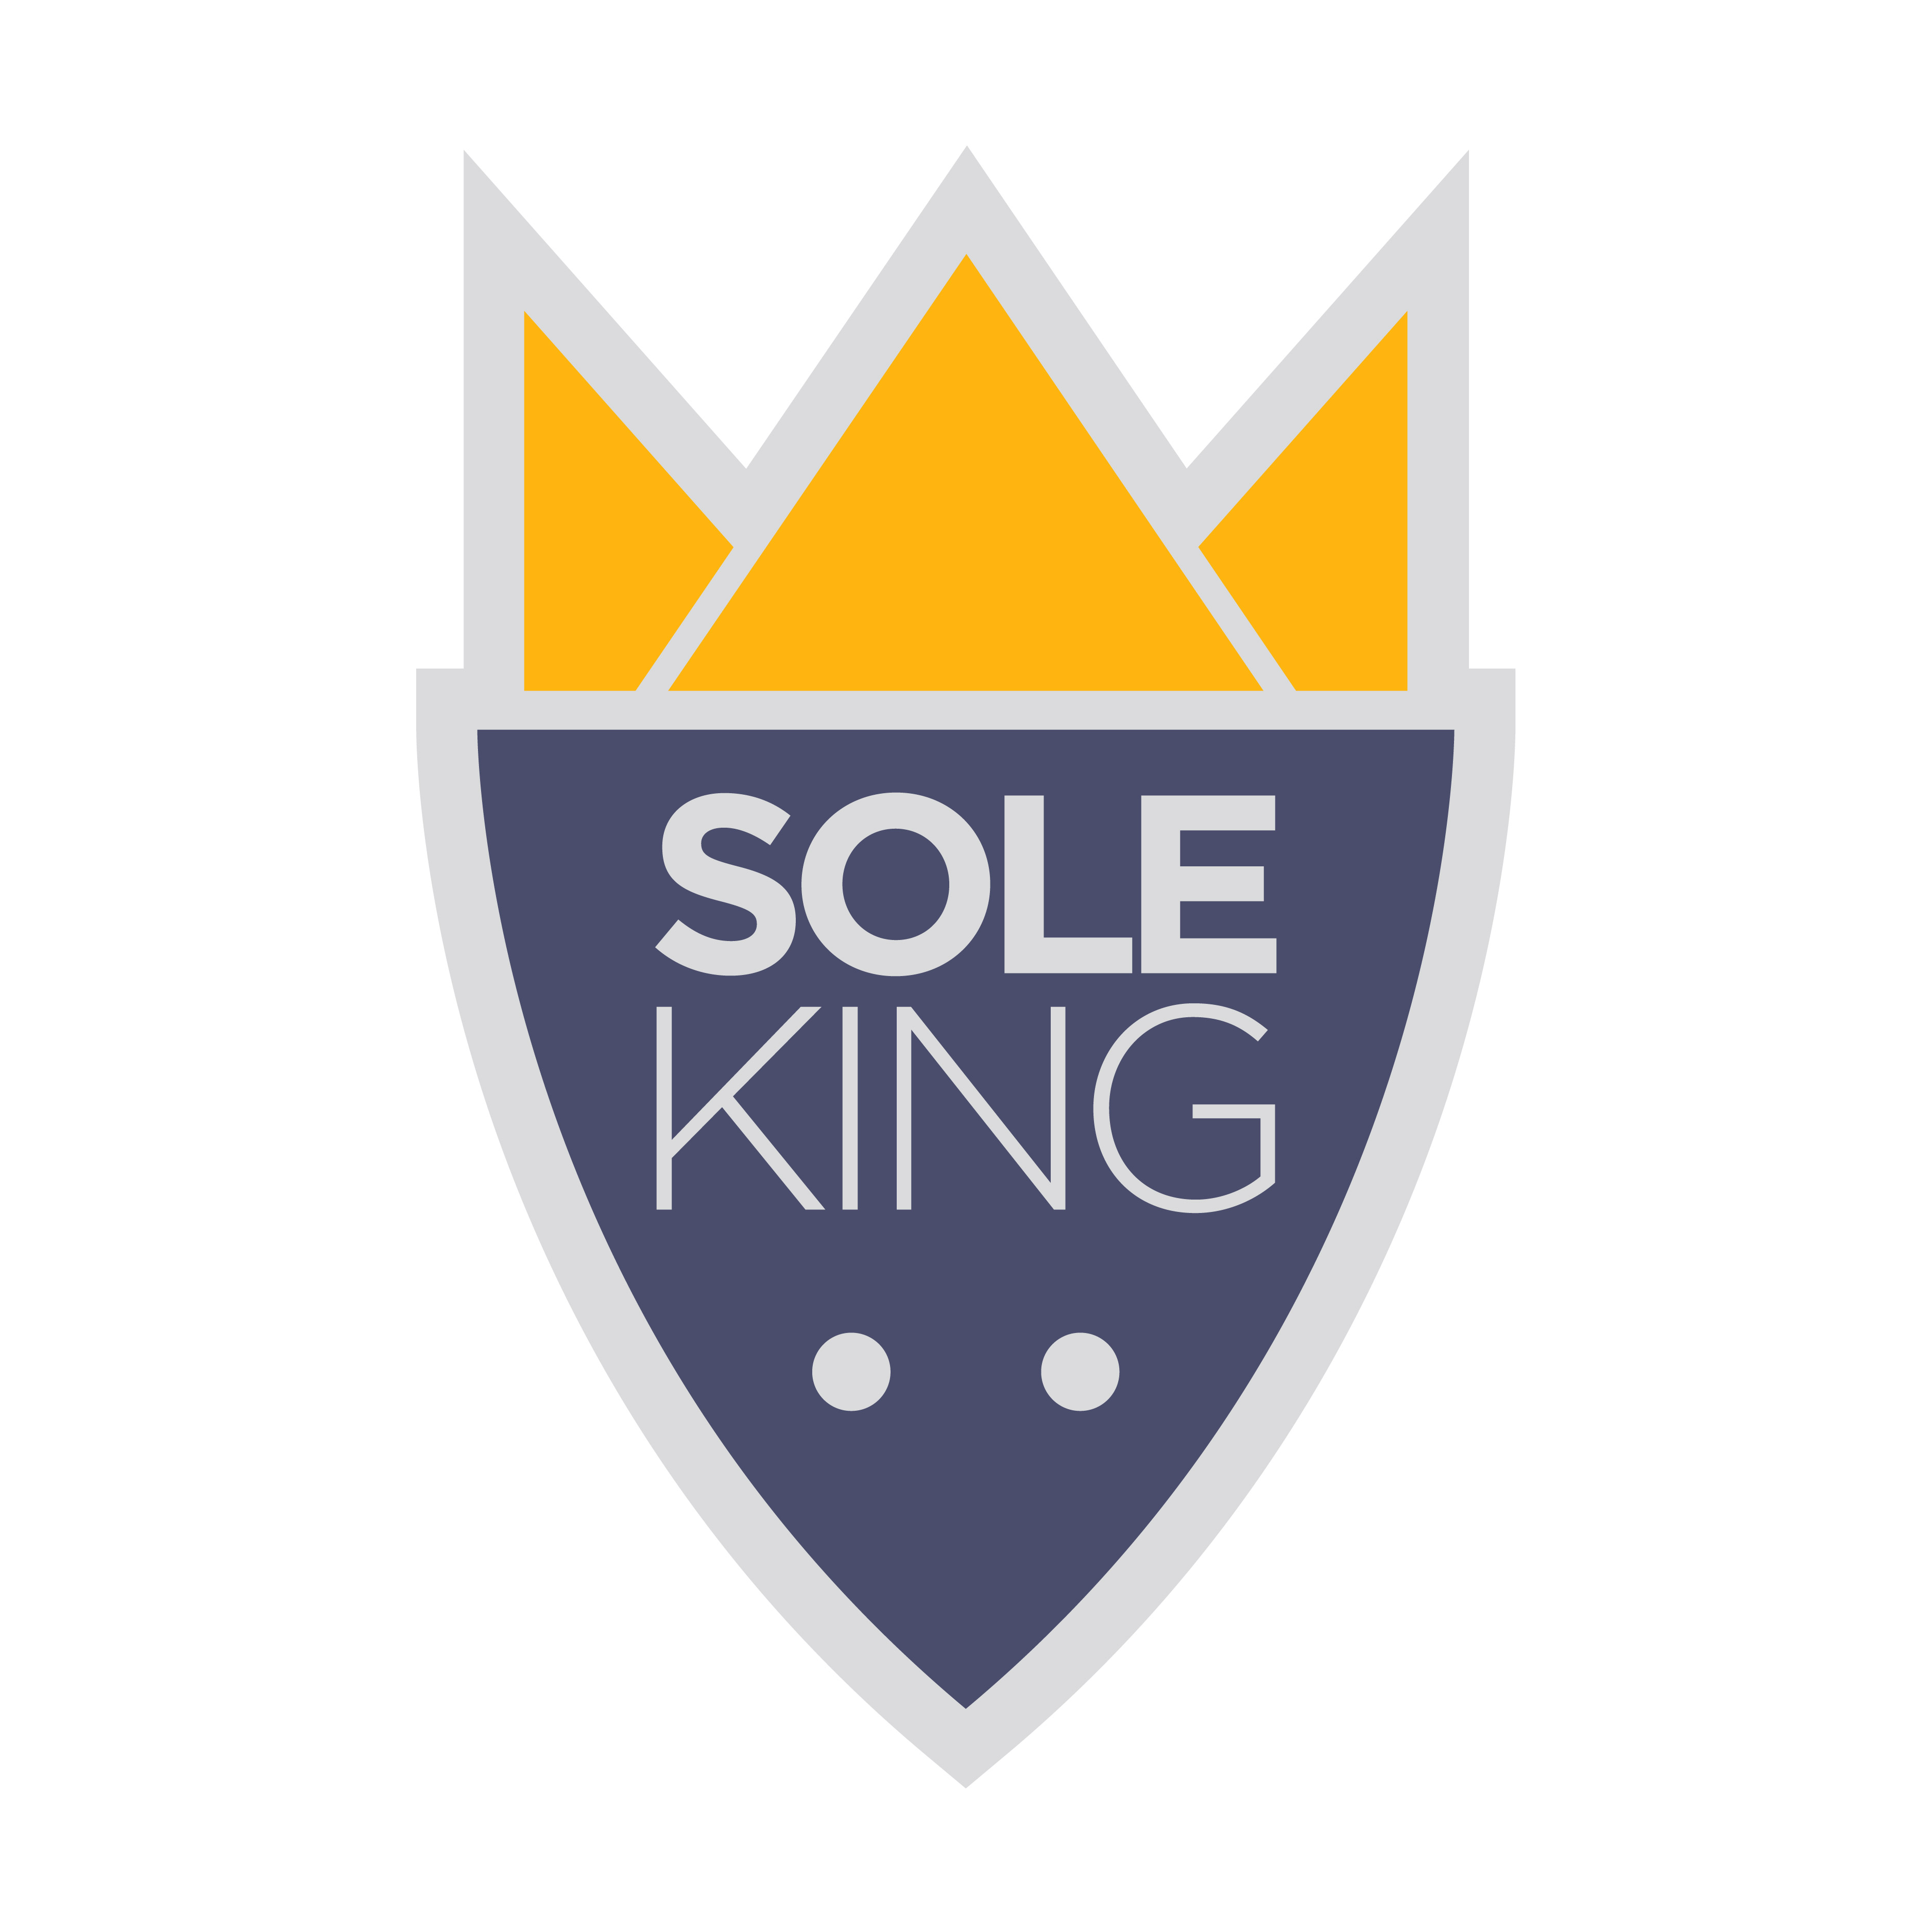 Sole King